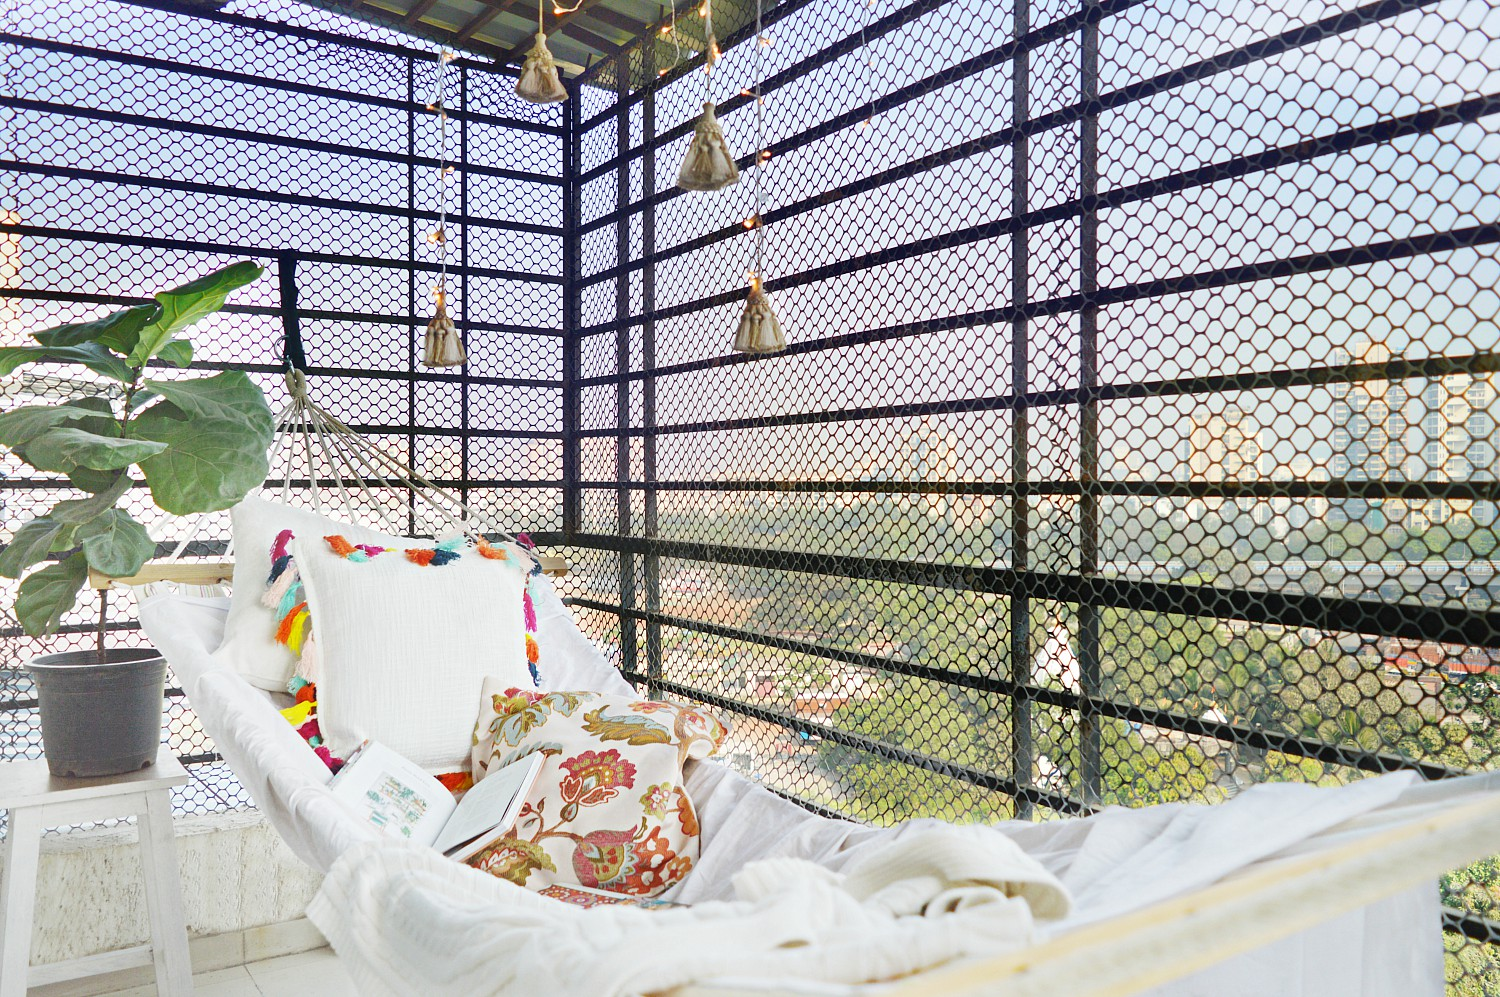 Apartment Balcony Decorating Ideas That Roughly Costs About 7000 Rupees